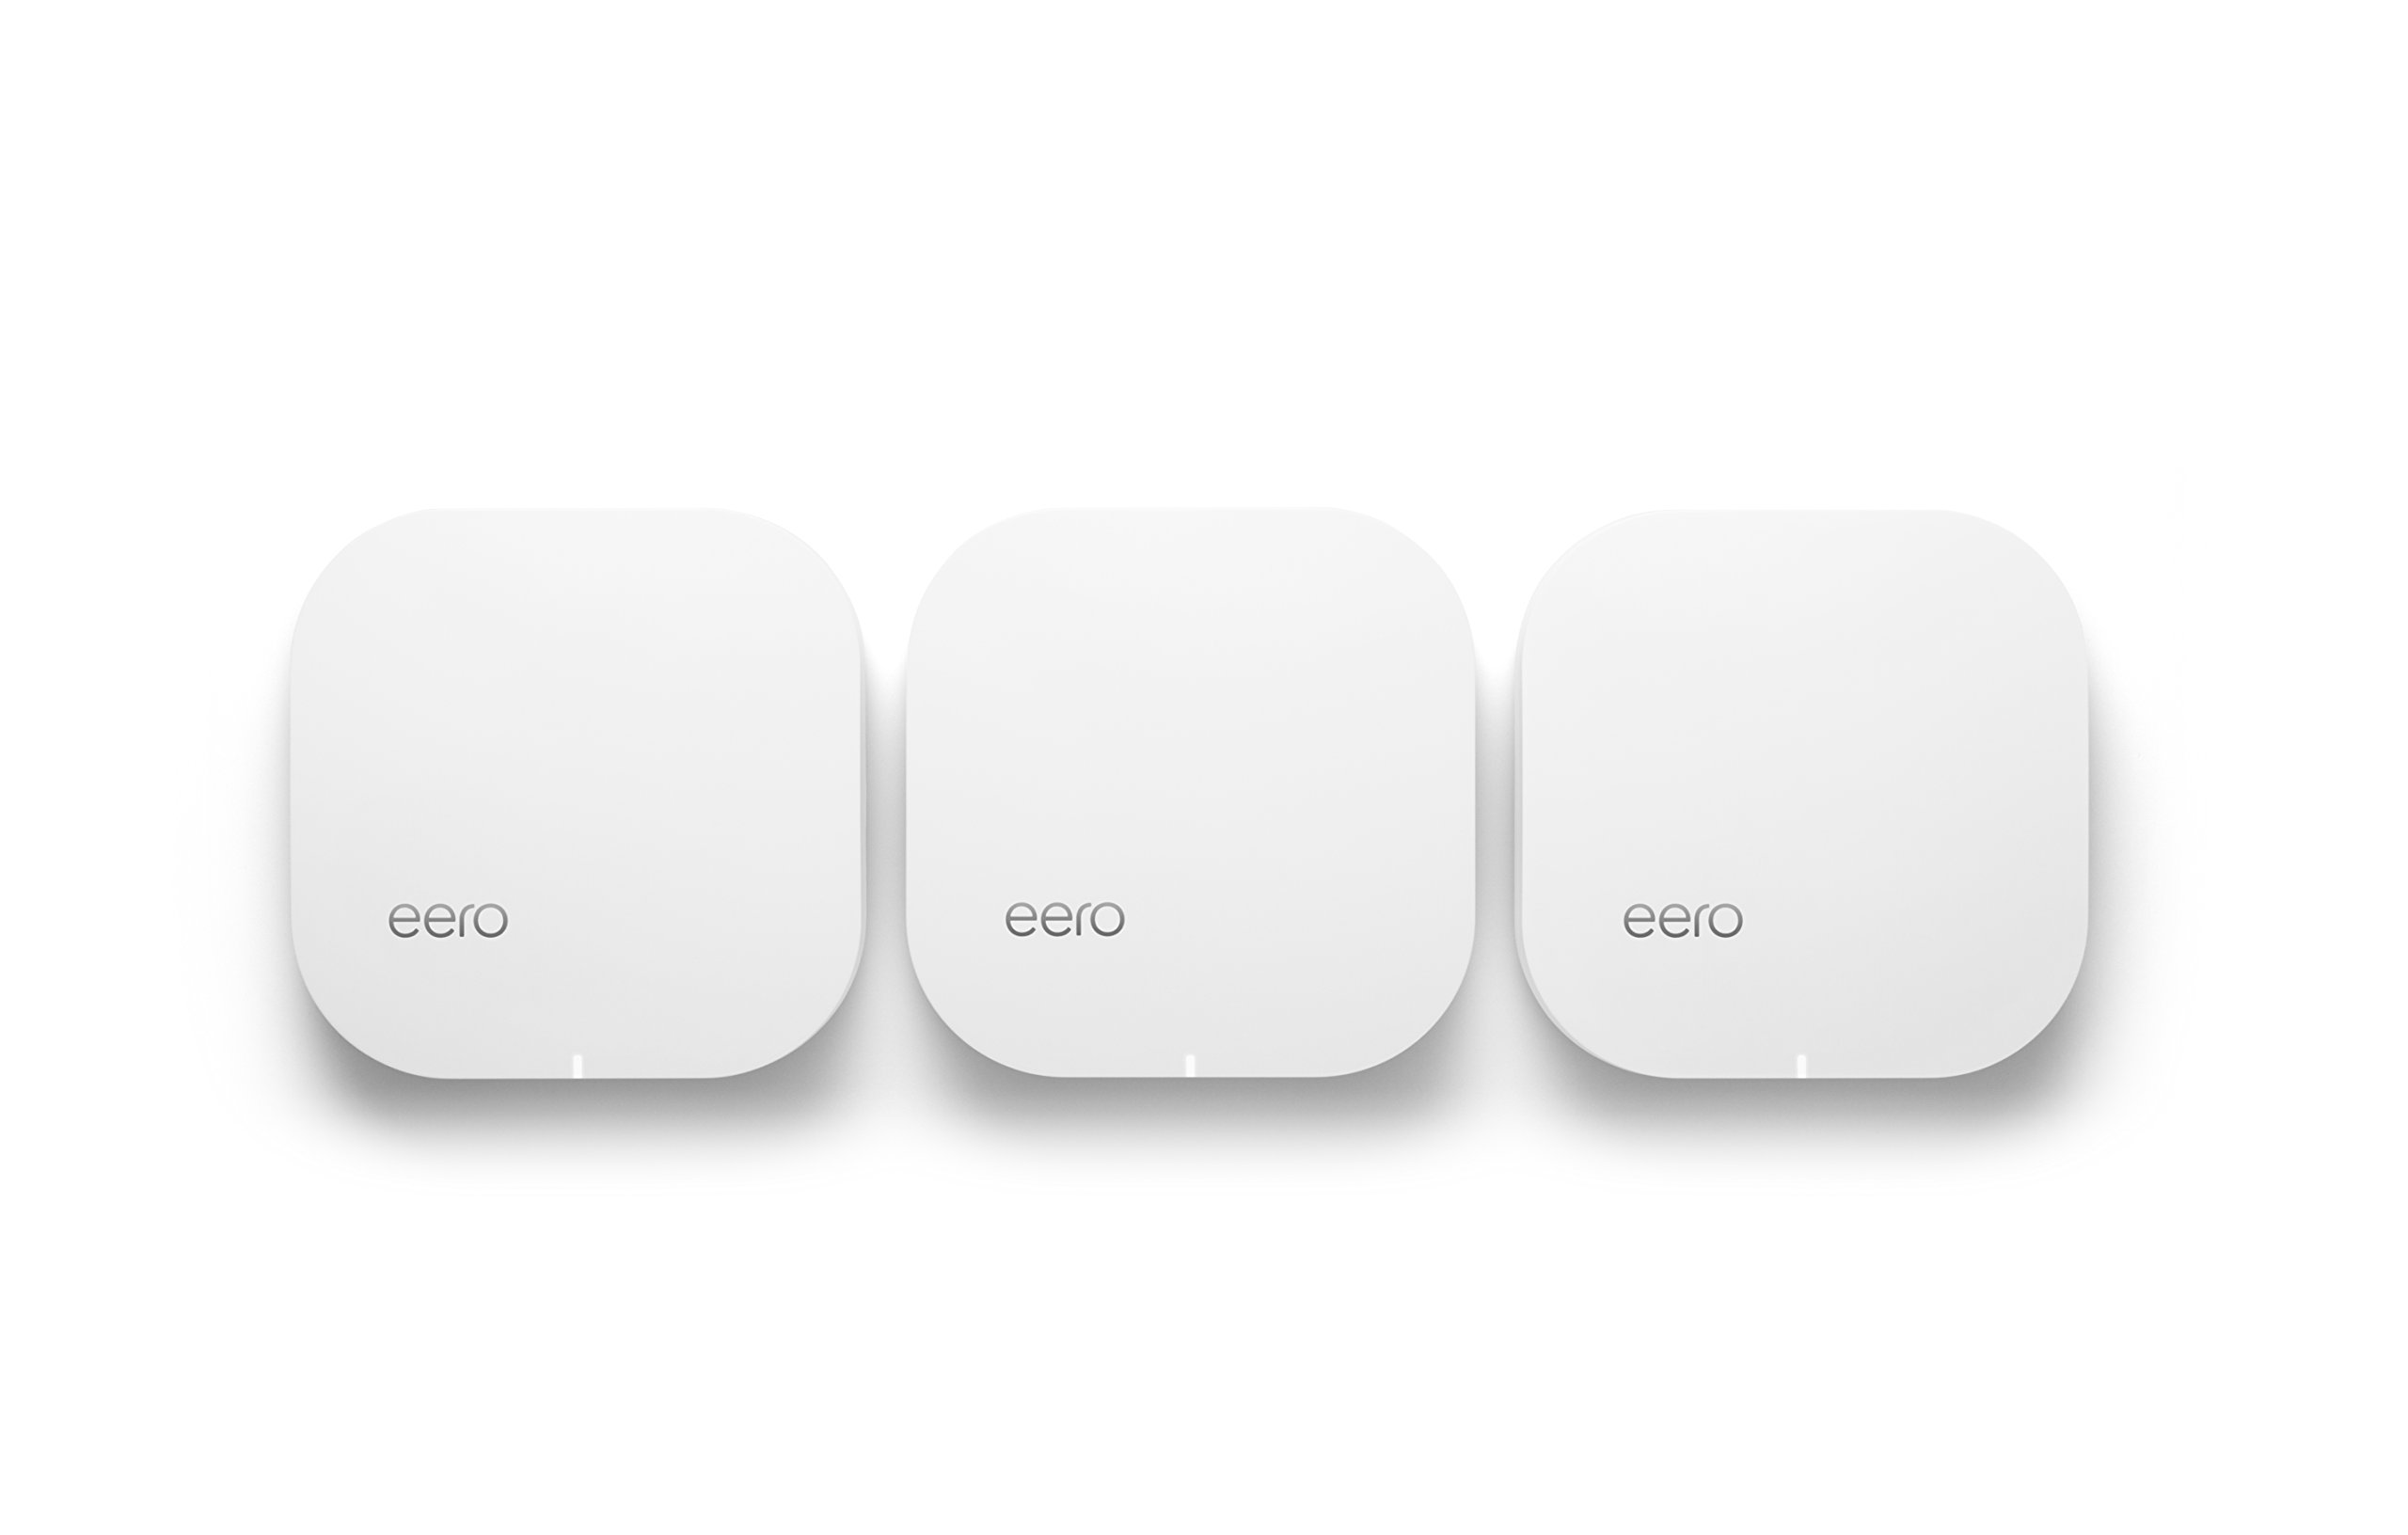 eero Home WiFi System (Pack of 3) - 1st generation, 2016 product image